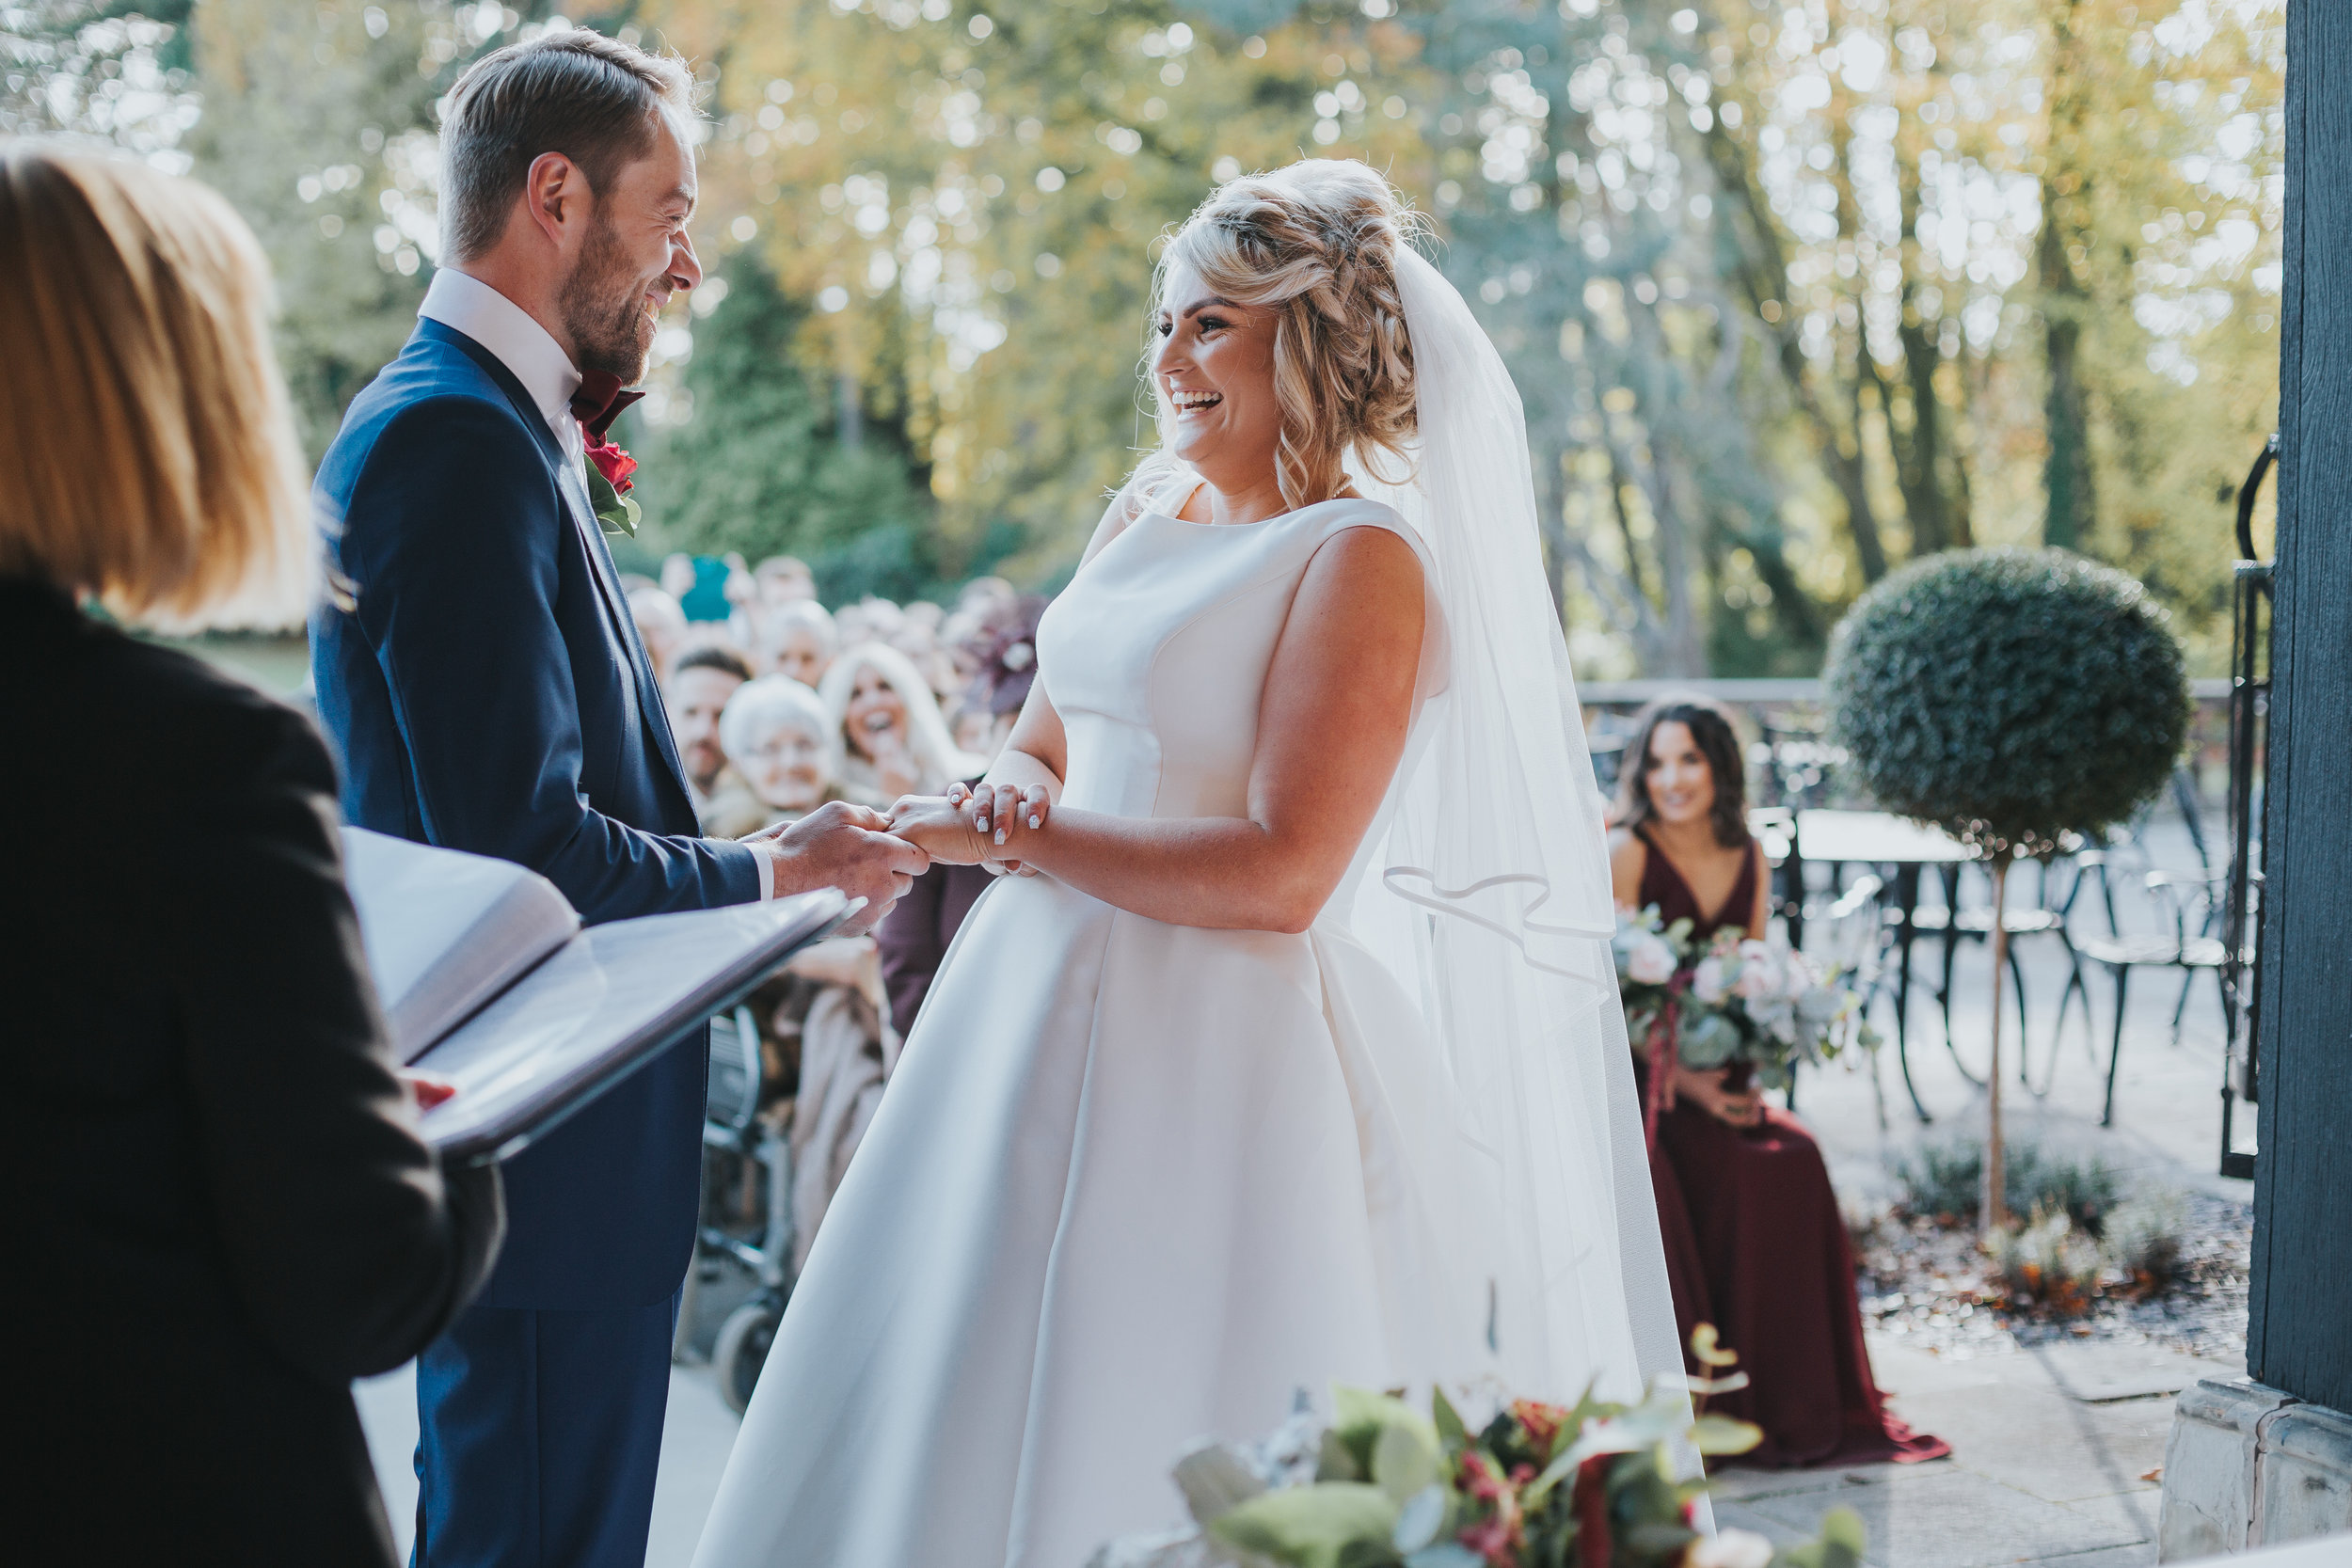 Bride and Groom hold hands laughing as they say their vows during outdoor ceremony.